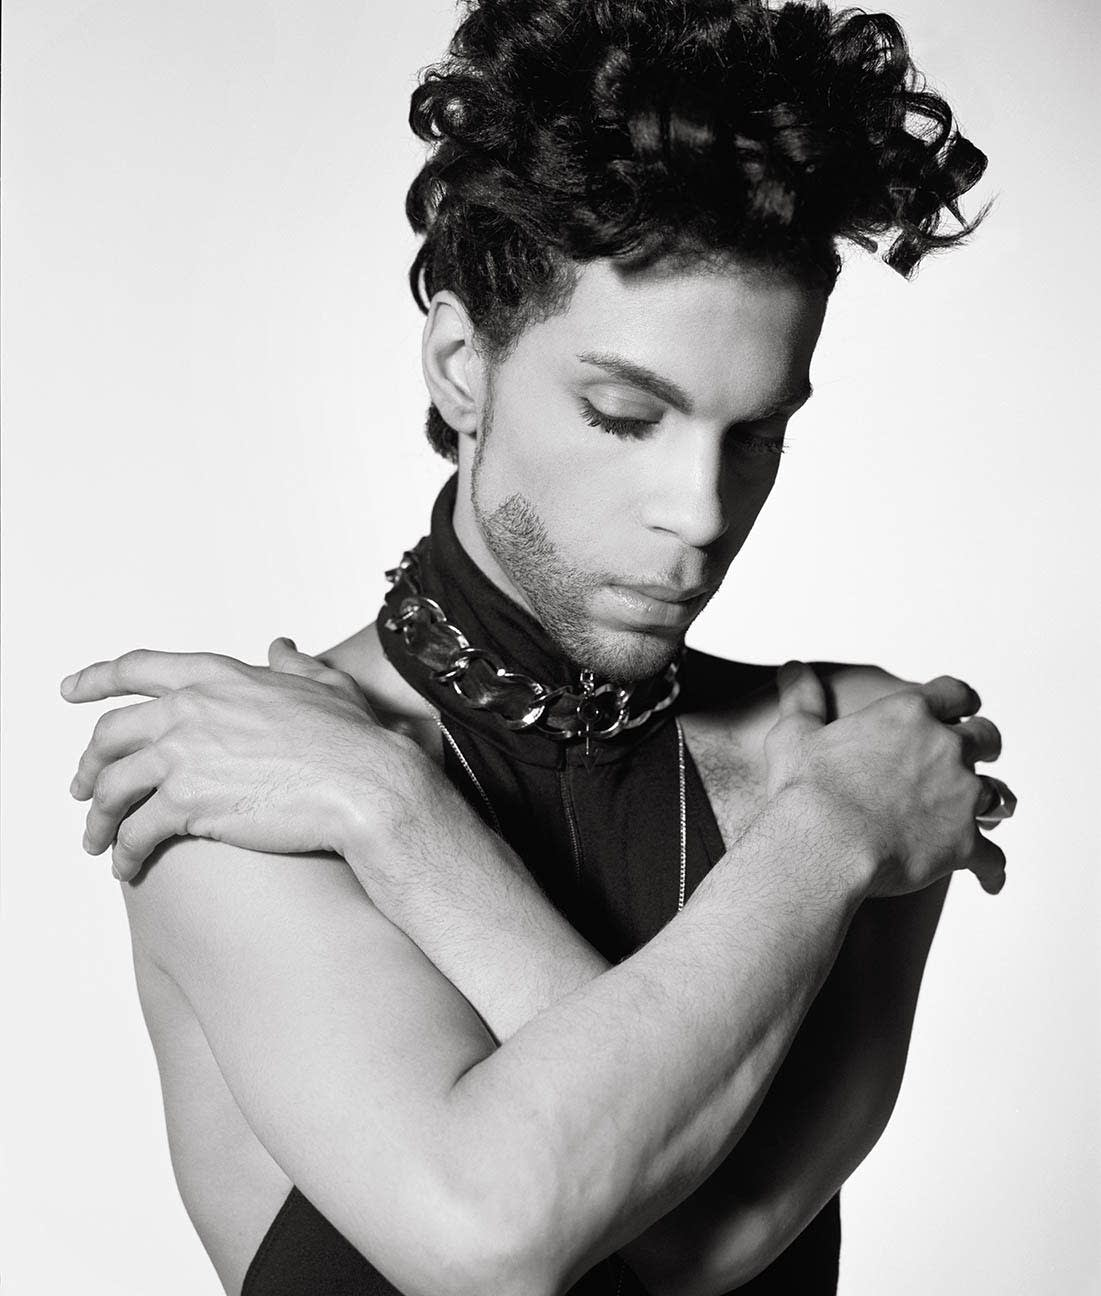 Hear A Previously Unreleased 1982 Prince Song Moonbeam